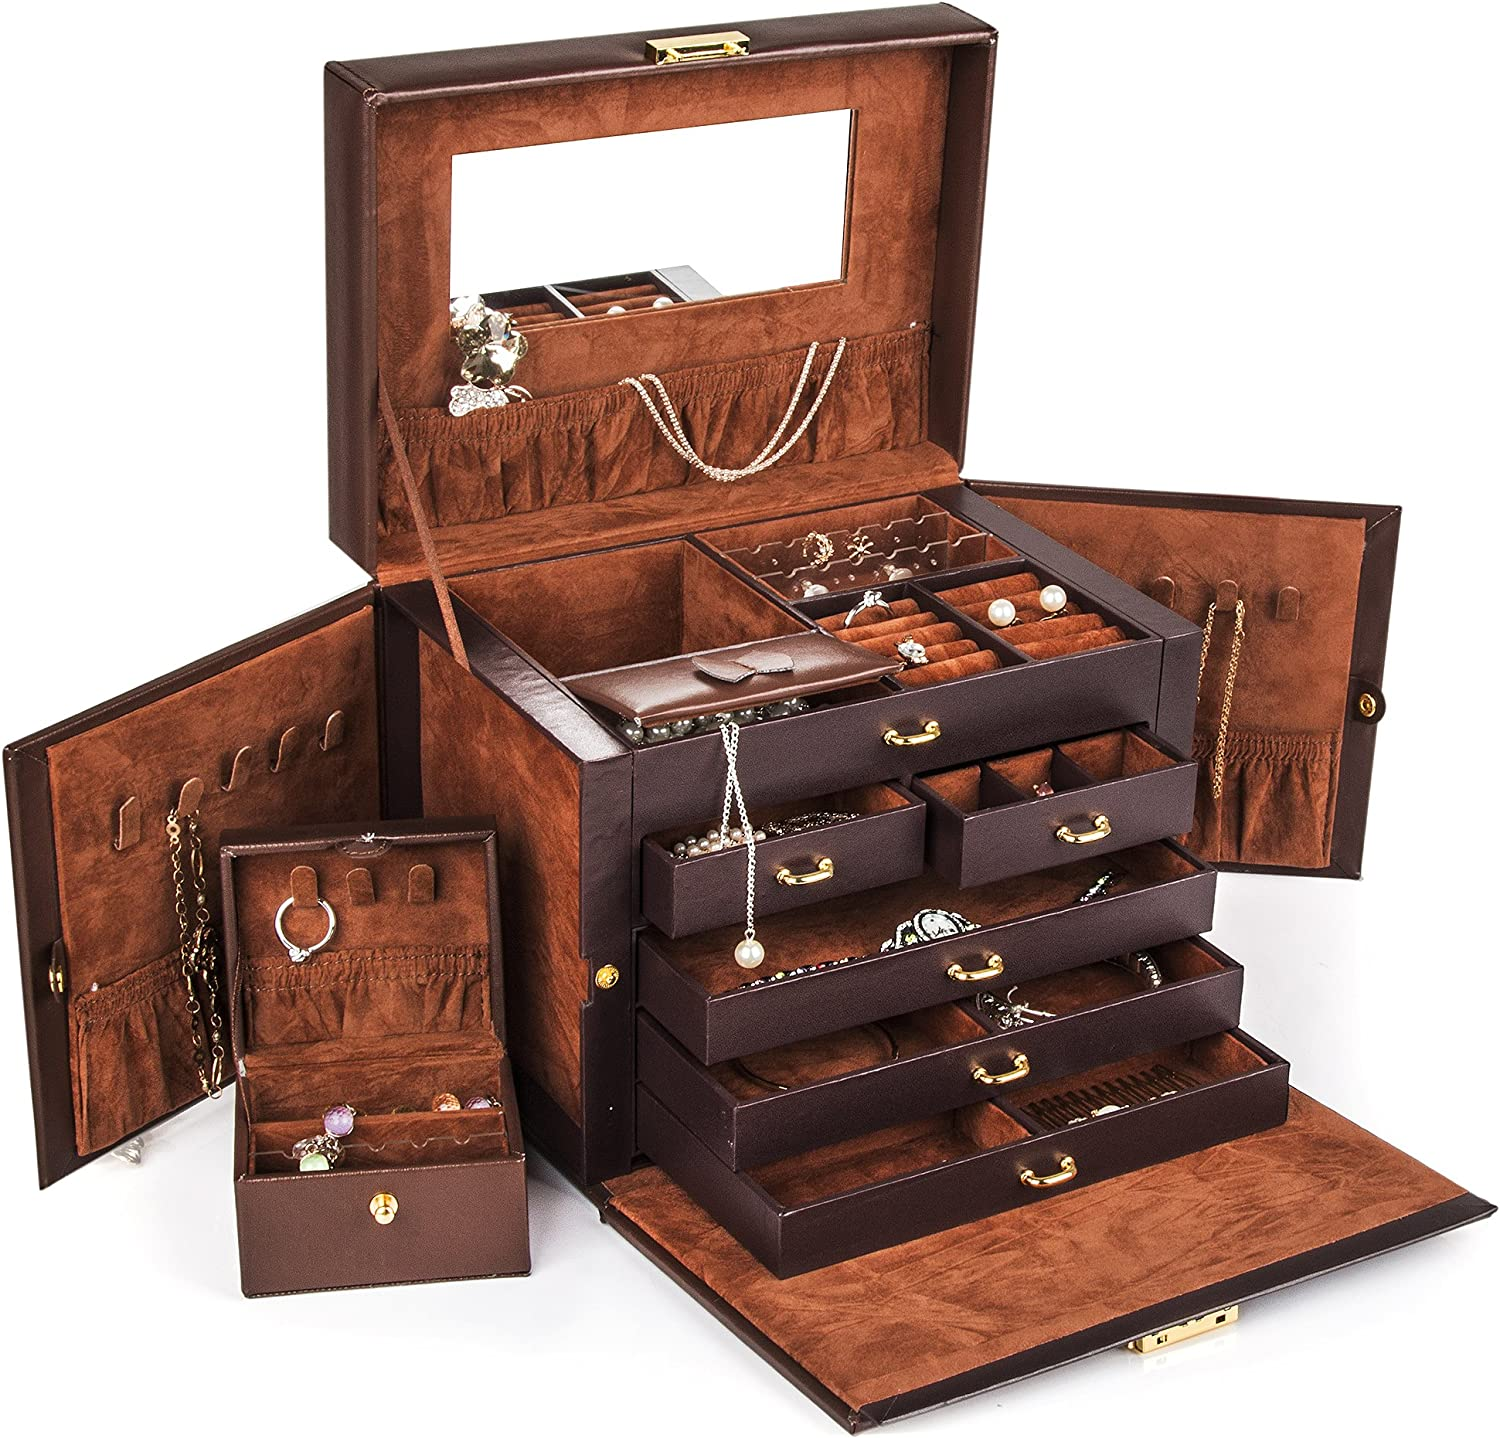 LEATHER JEWELRY BOX CASE STORAGE ORGANIZER WITH TRAVEL CASE AND LOCK